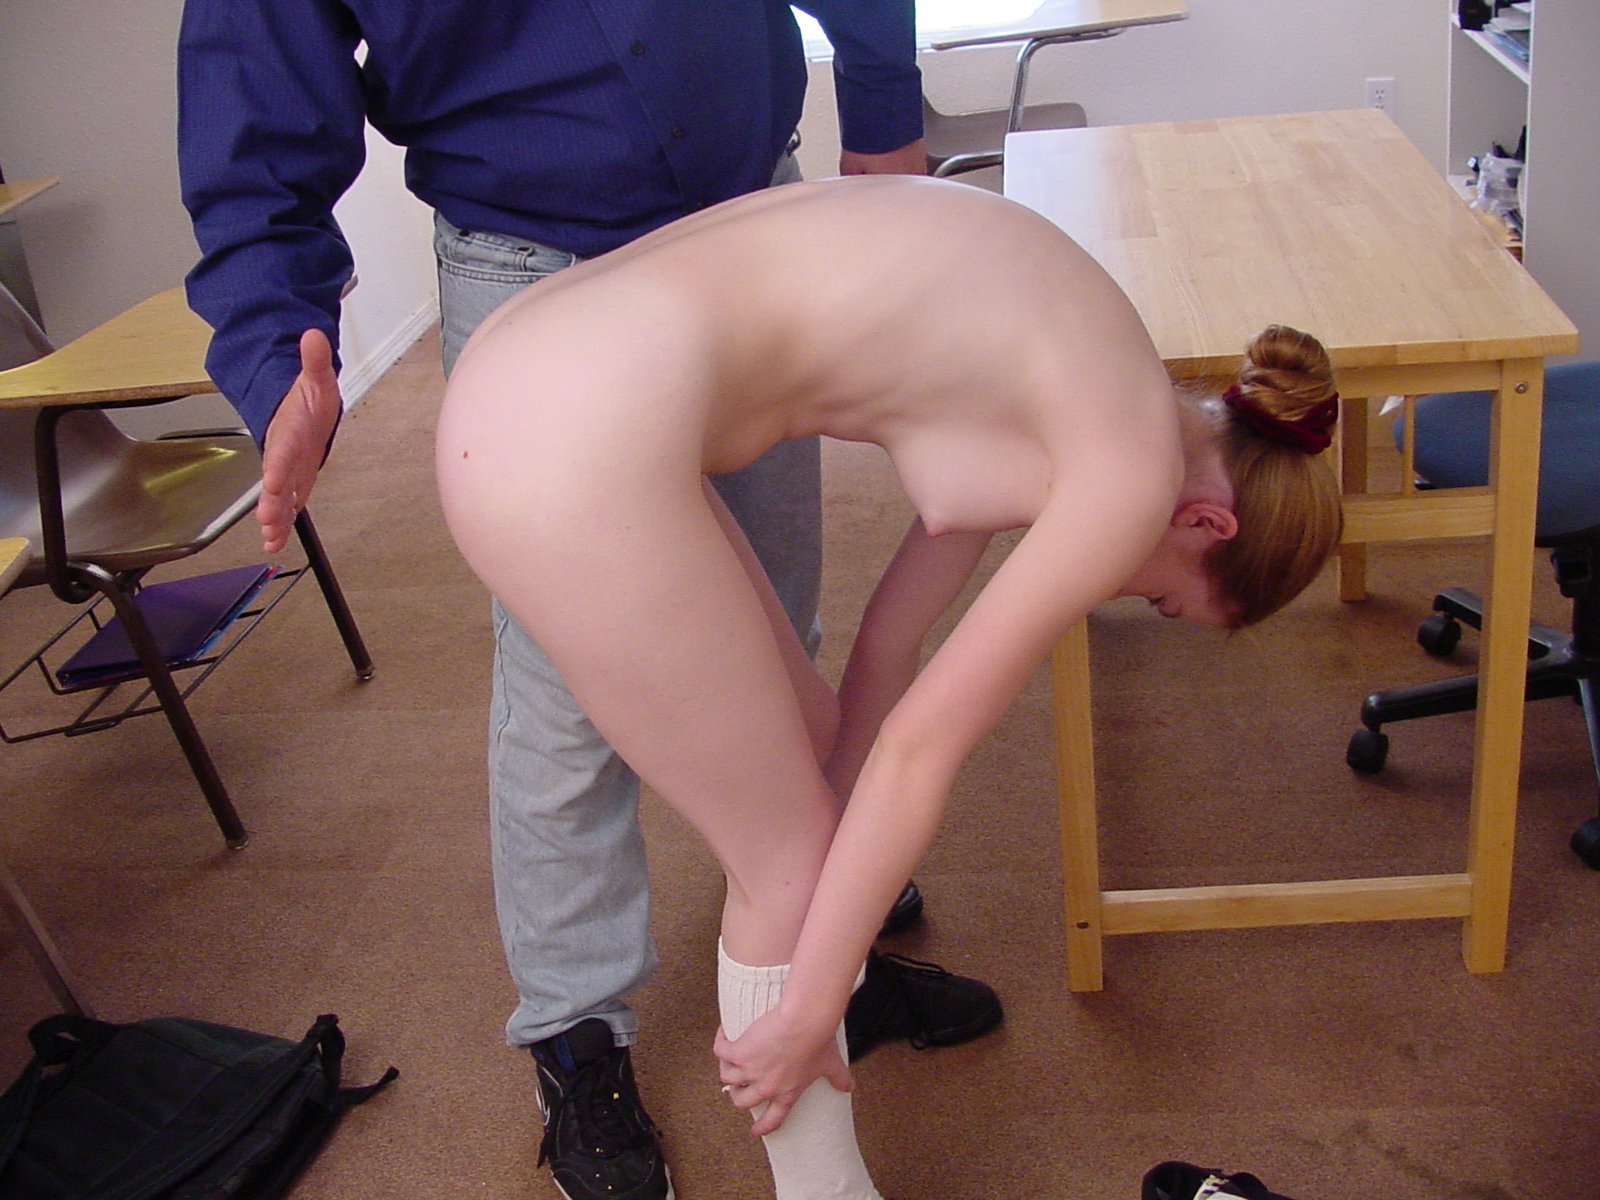 Spanking Video: Cheer for Nicole